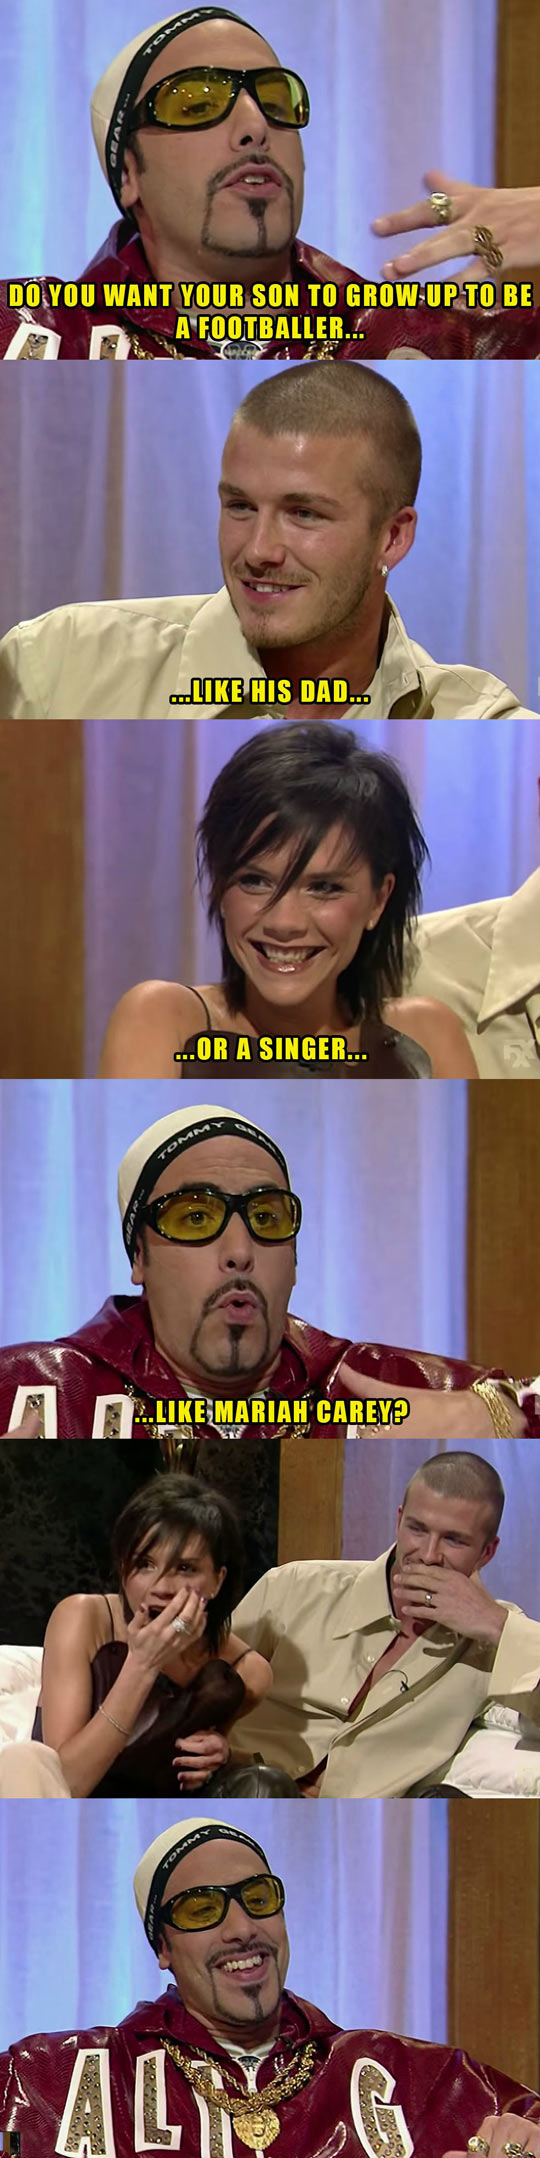 Ali G Asks Some Questions